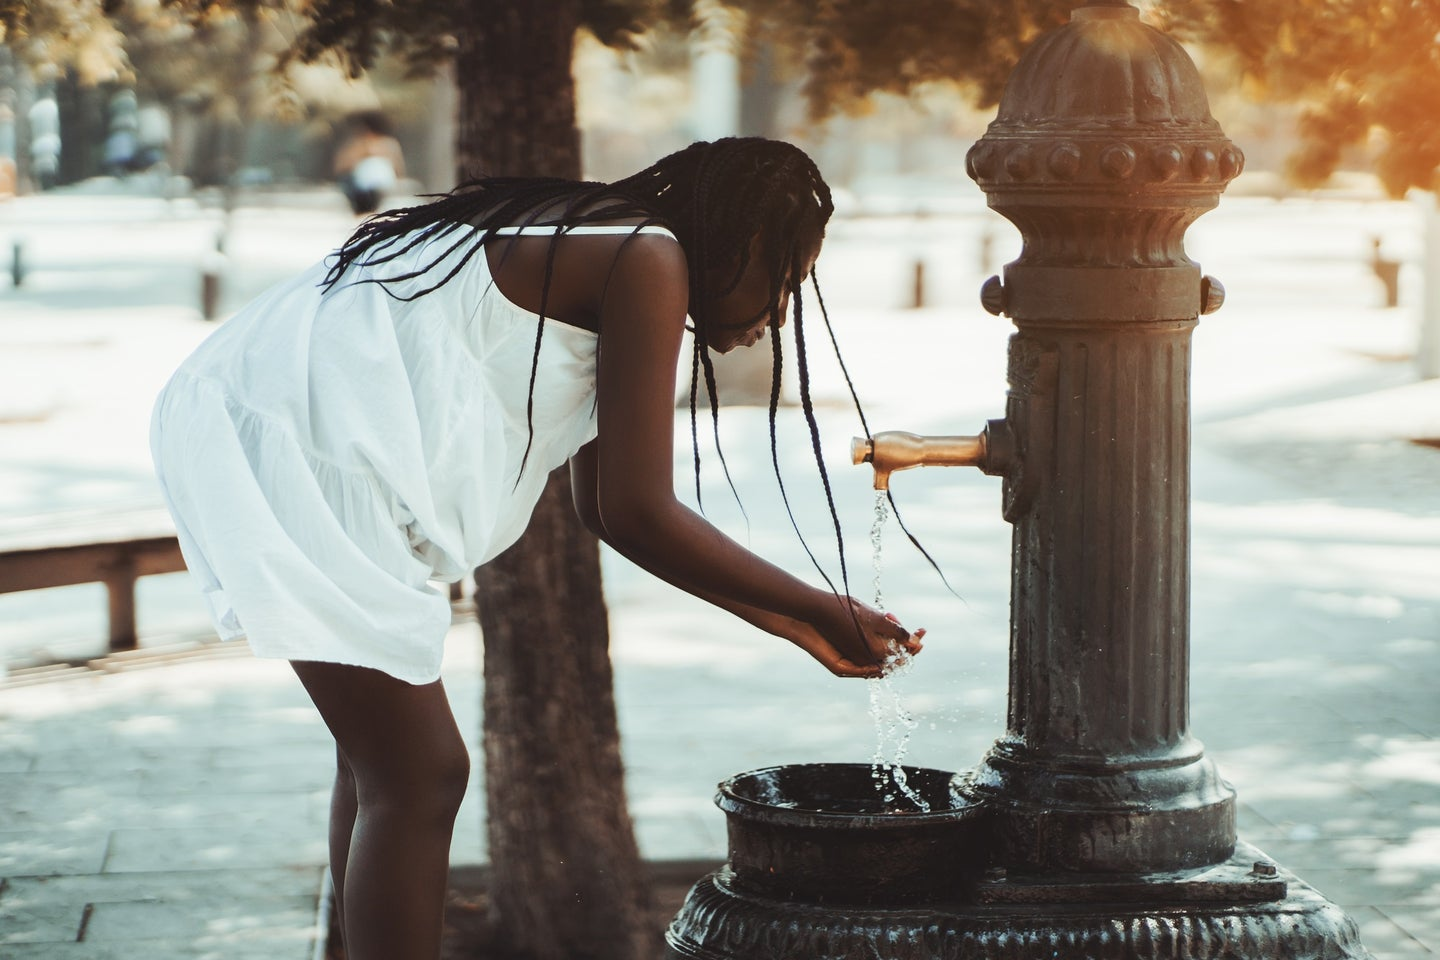 Black person in white dress and with long hair stooping over a city water fountain in the summer heat